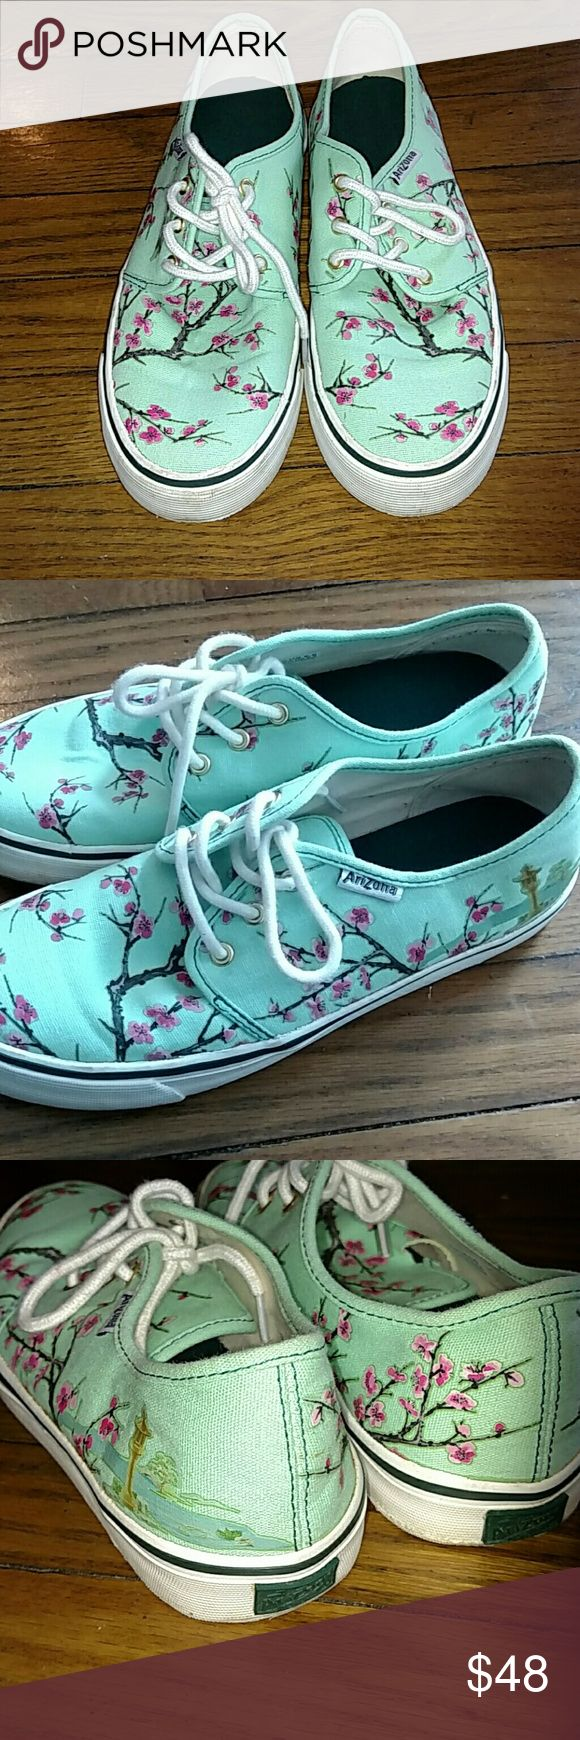 Arizona Tea brand cherry blossom sneakers!!!!! Sea foam green with pink cherry blossoms! Authentic Arizona sneakers. Gold eyelets, white laces. BRAND NEW. A little dirt in the bottoms from trying on. They are womens size 6.5, mens 5, but I think they fit more like a  women's 7. Shoes Sneakers